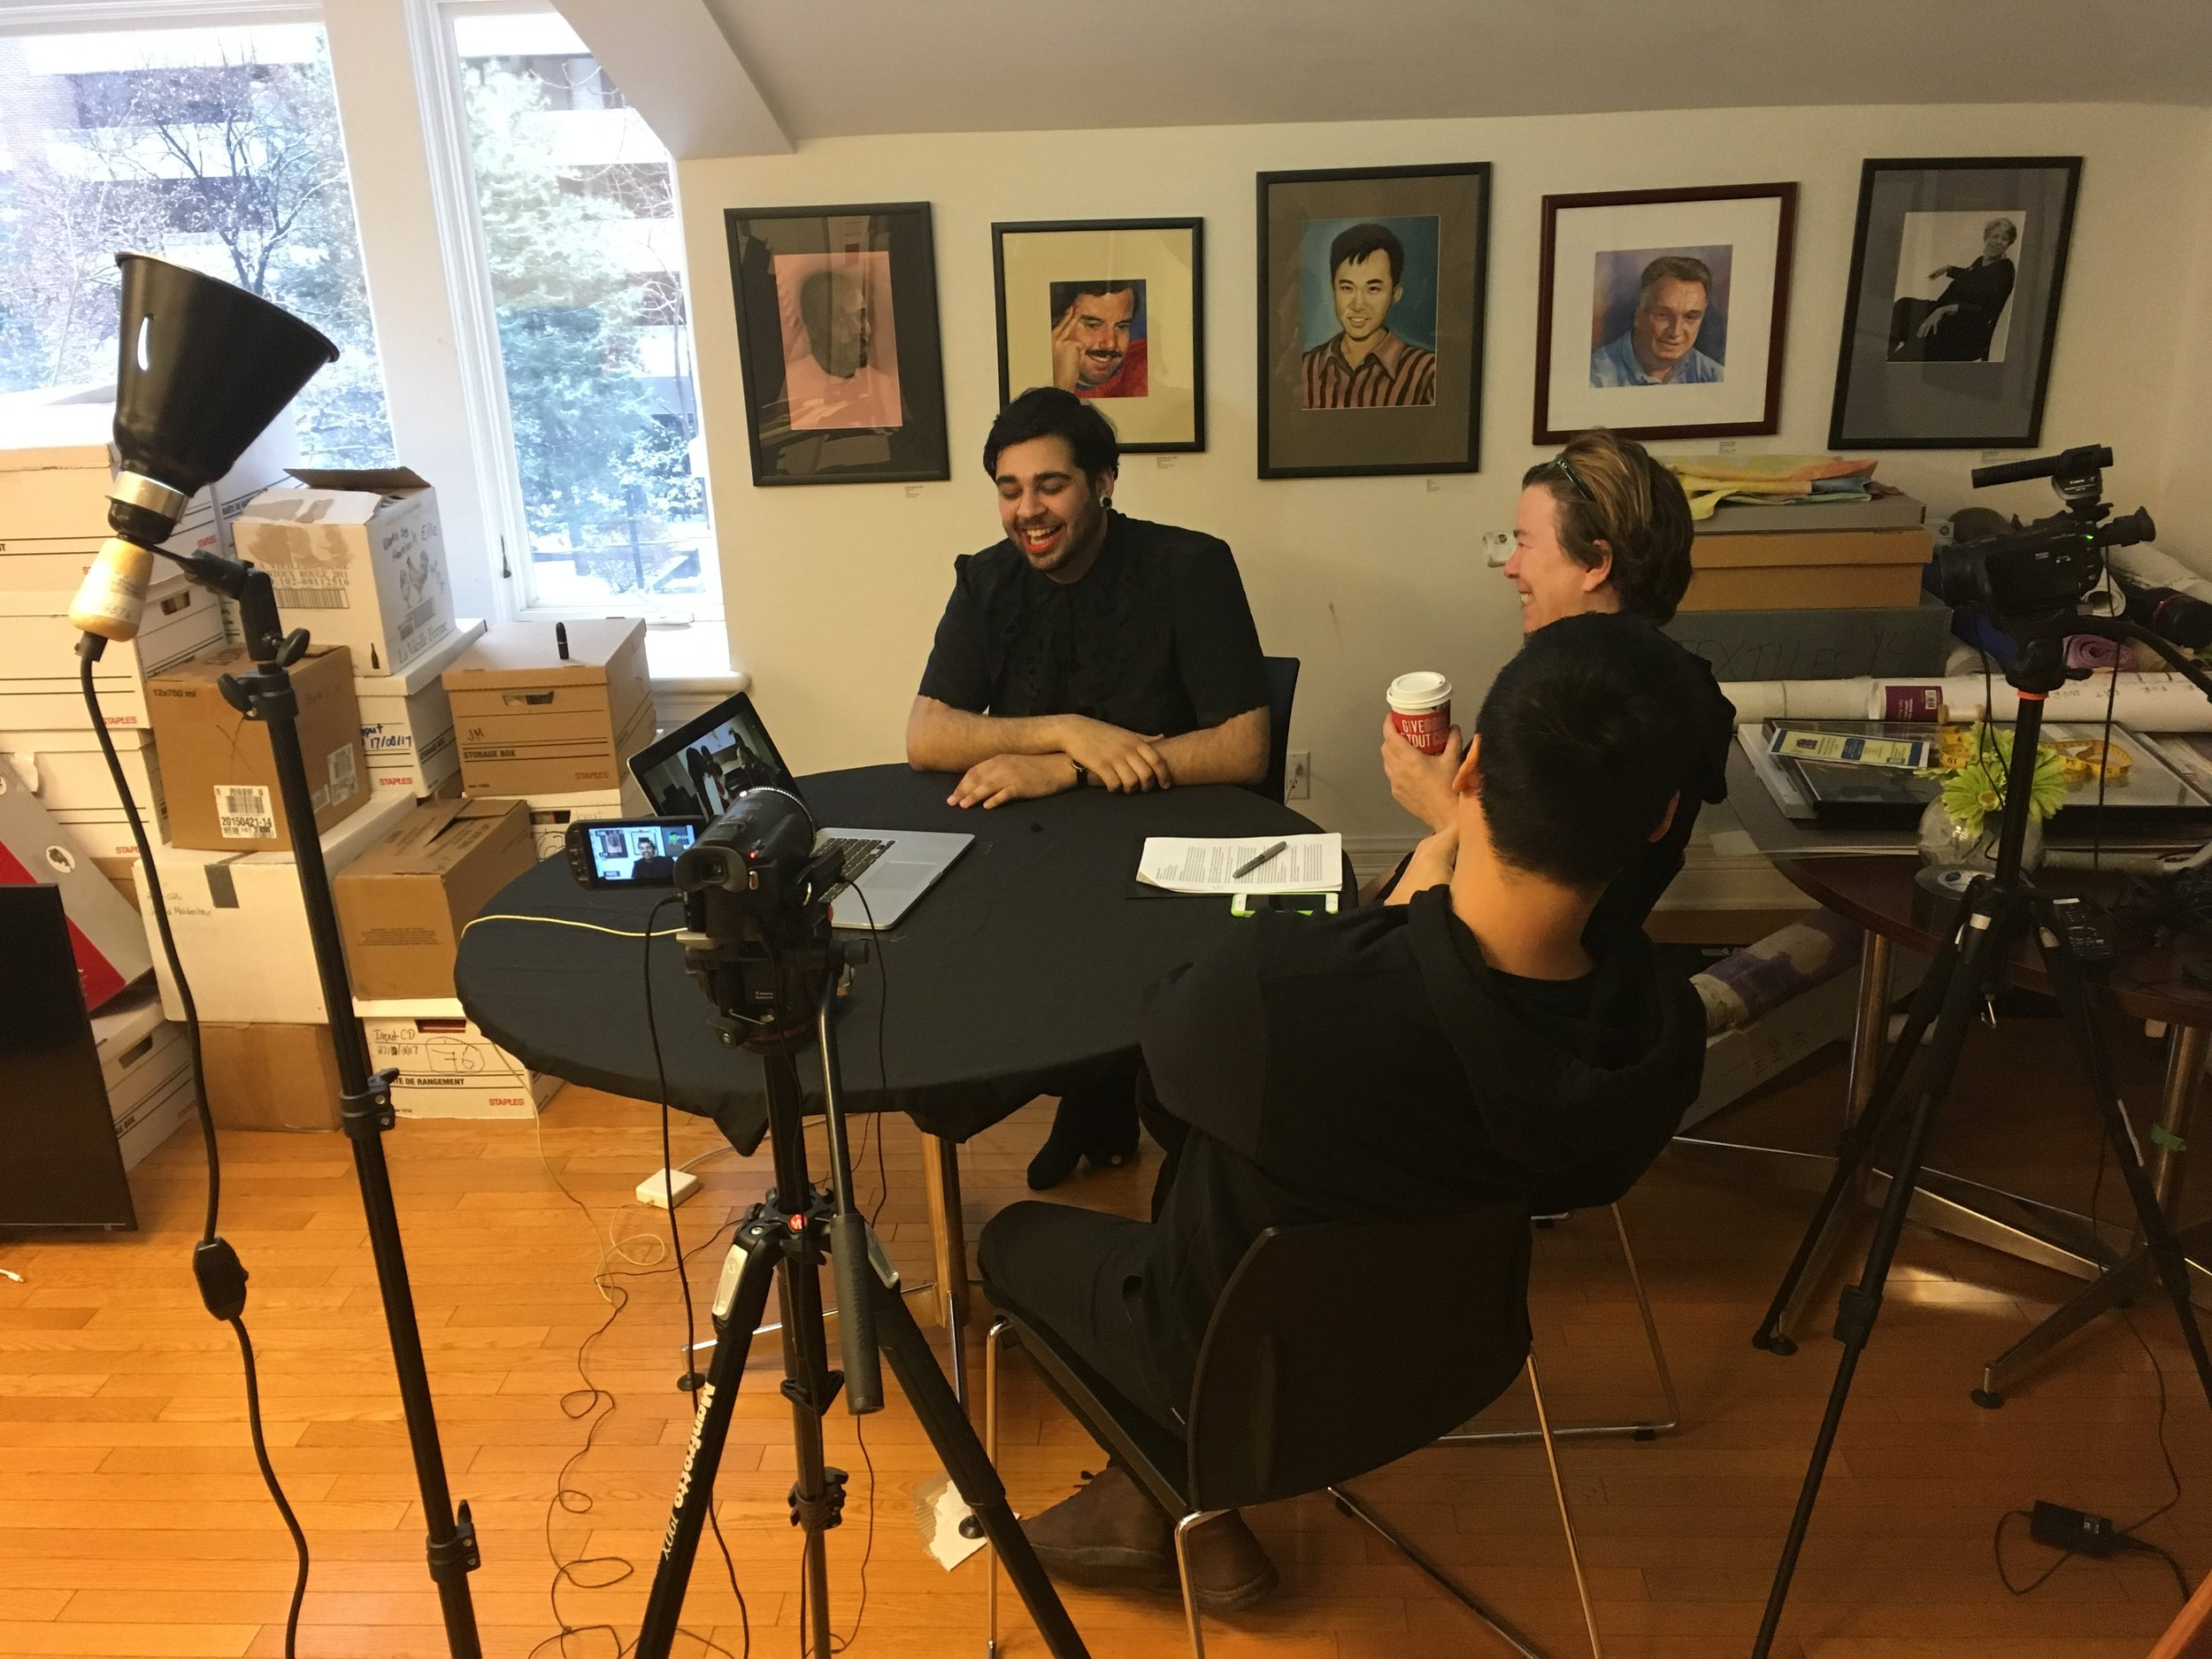 Sajdeep Soomal in interview with Elspeth Brown and Vinh nguyen at the CLGA (Photo: C. Barreto, 2018)